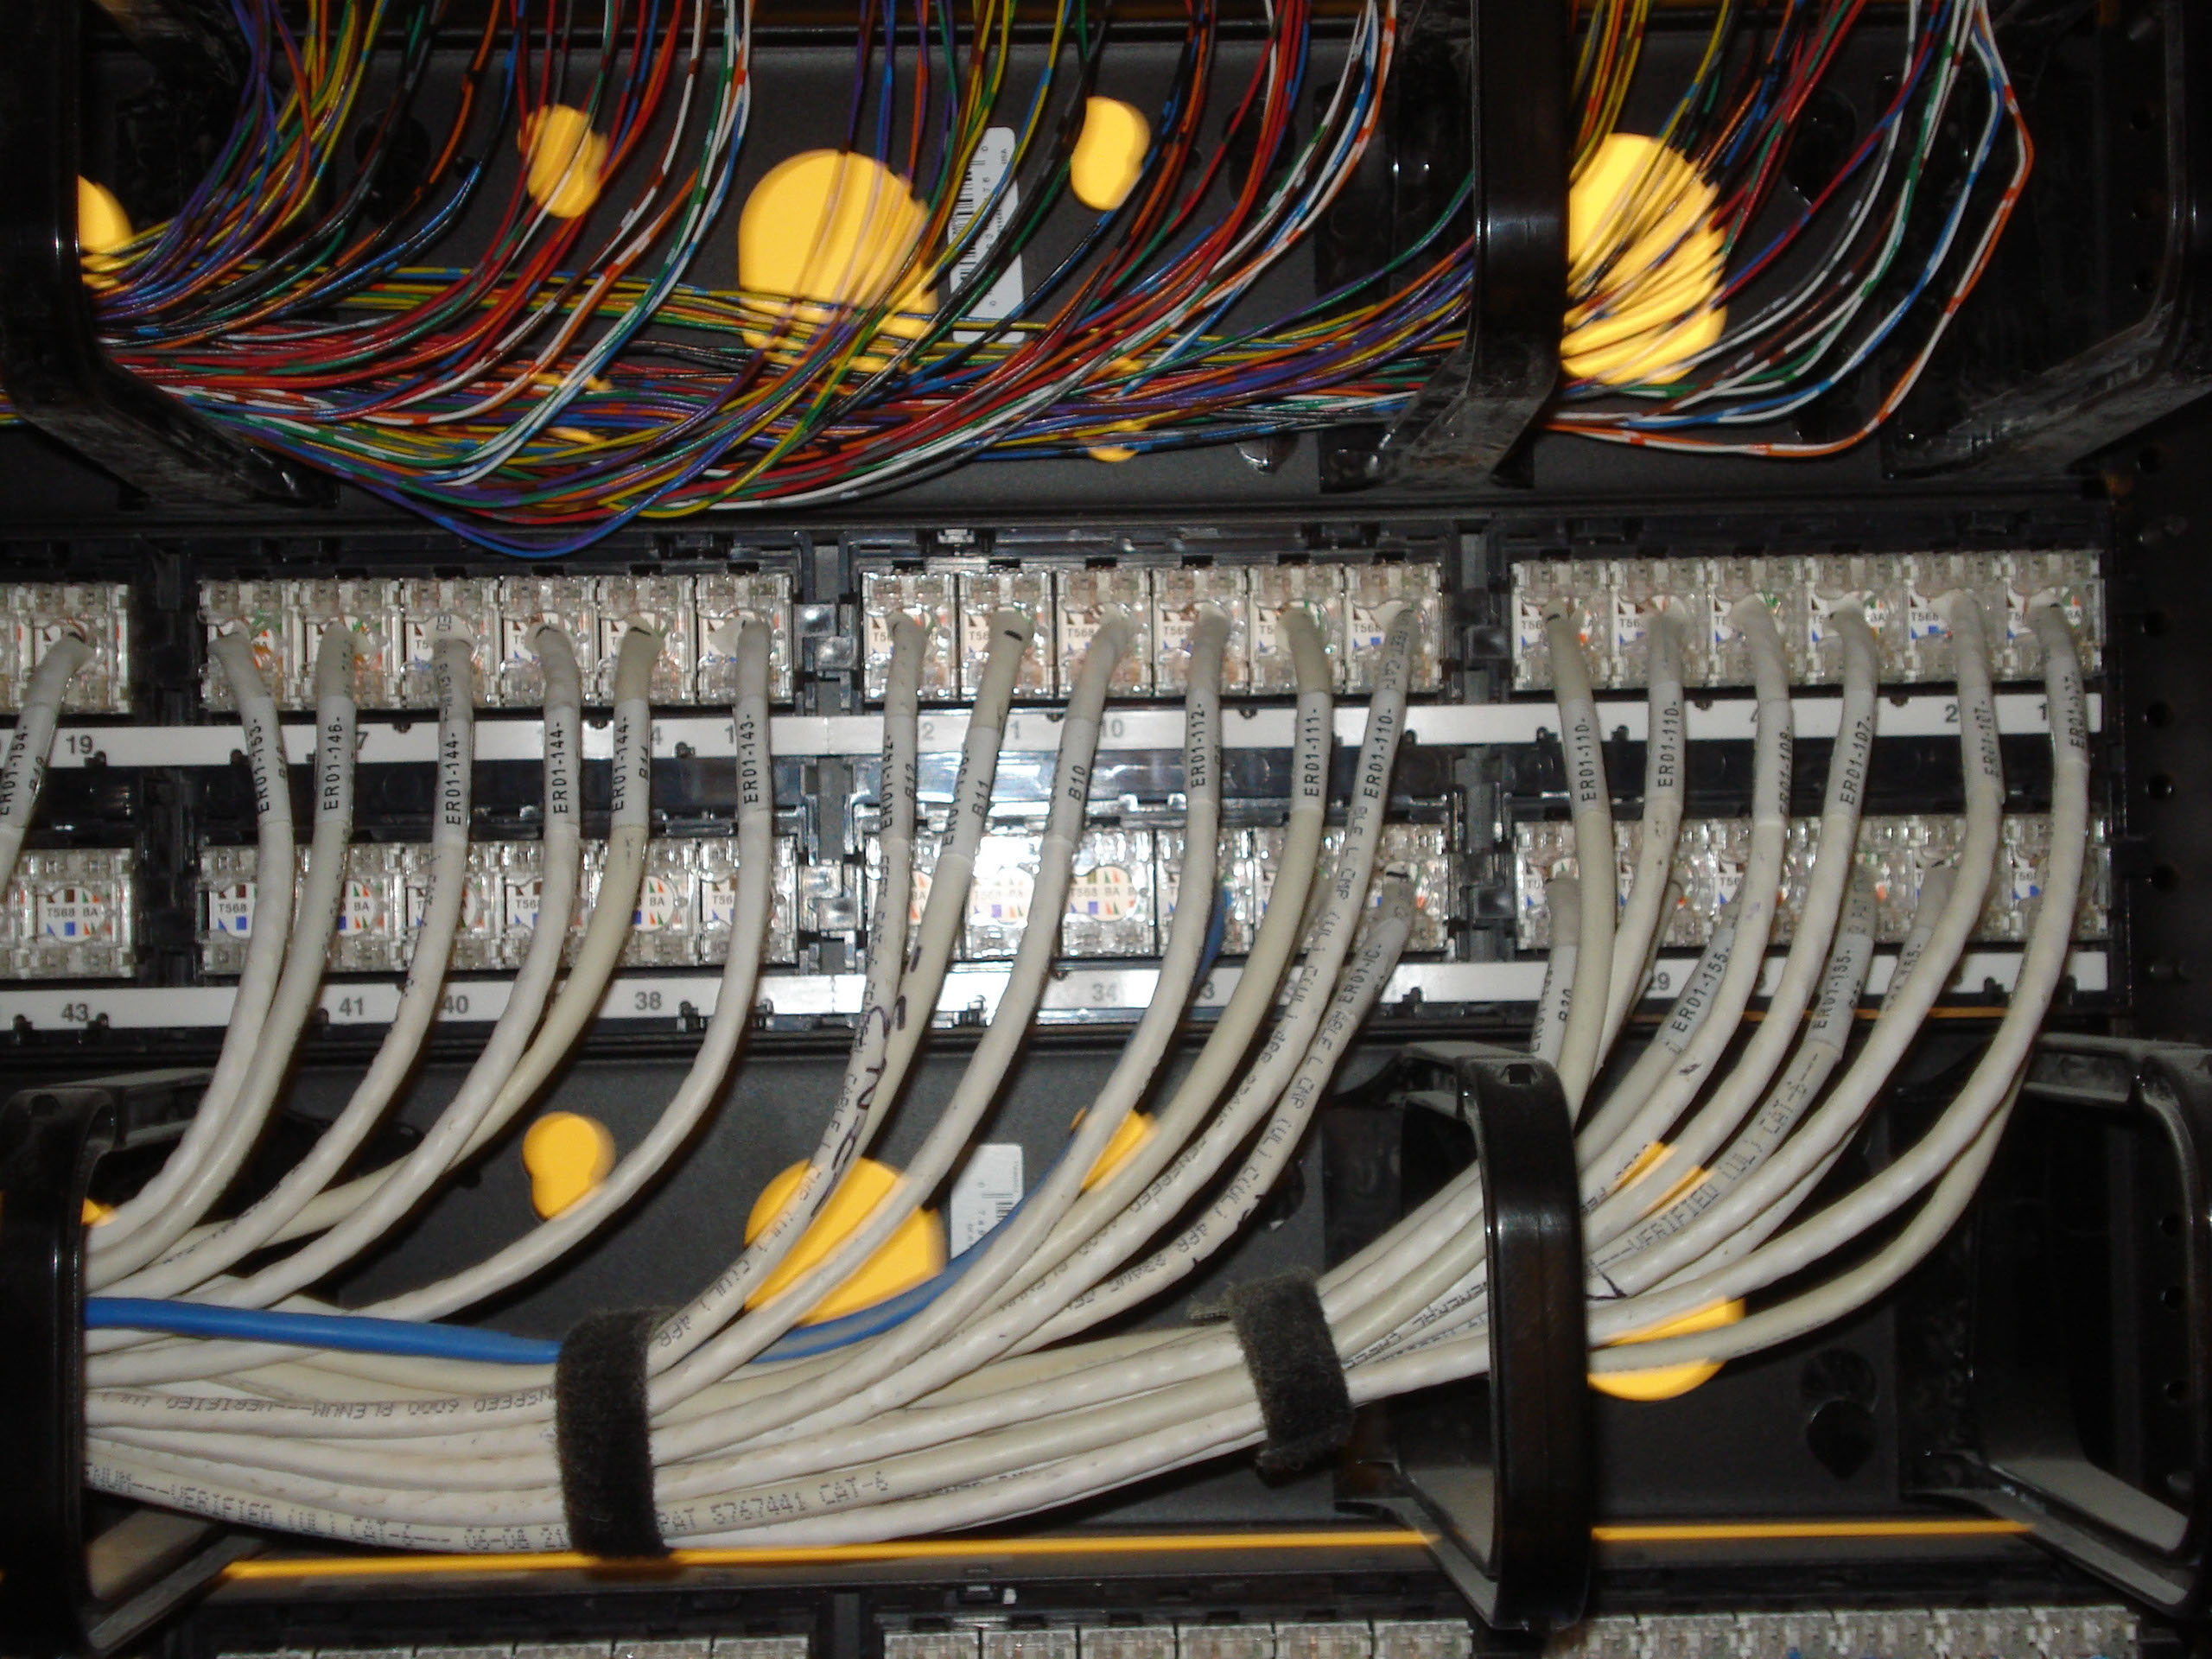 Welcome To Structured Technologies Wiring System Design Whether Its Schedule A Site Visit Or Service Call Just Discuss The Details Of Our Services We Are Eager Help With Whatever You Need